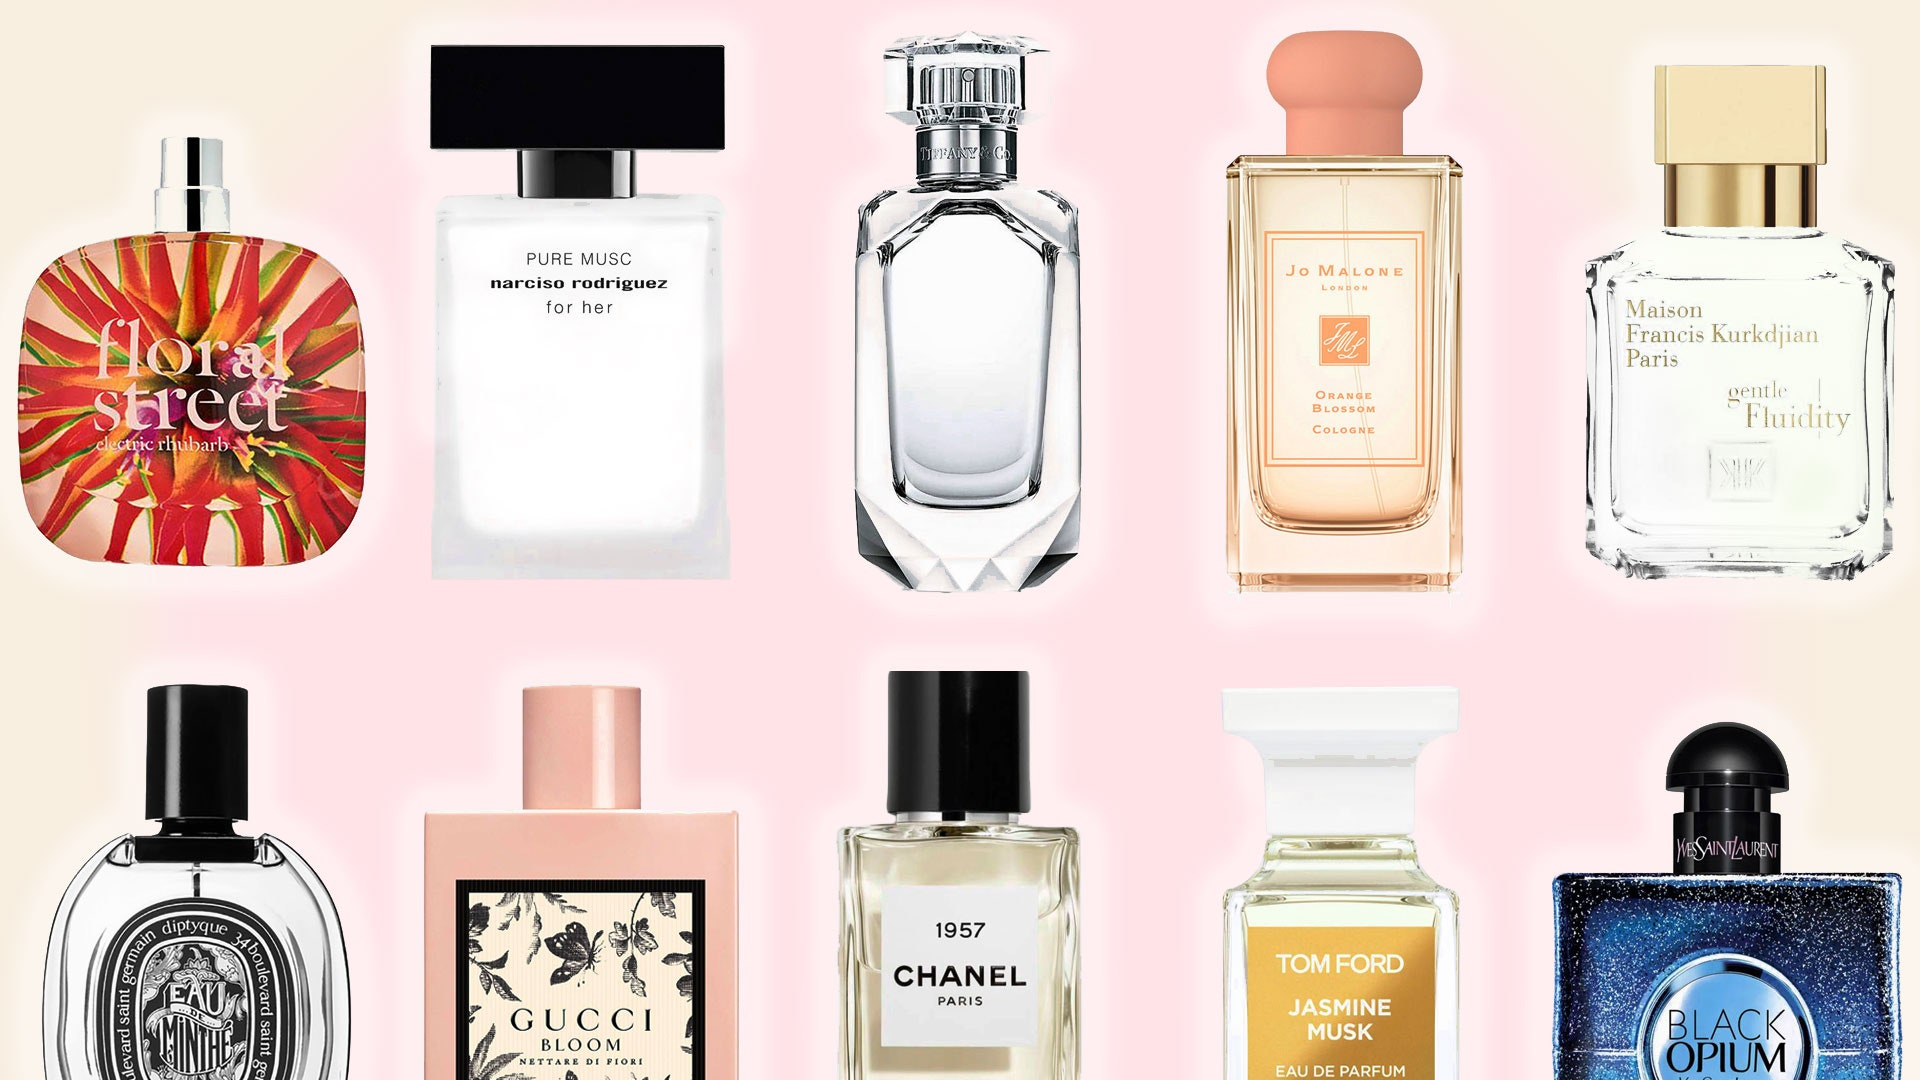 How To Select The Right Perfume To Make Your Signature Scent?